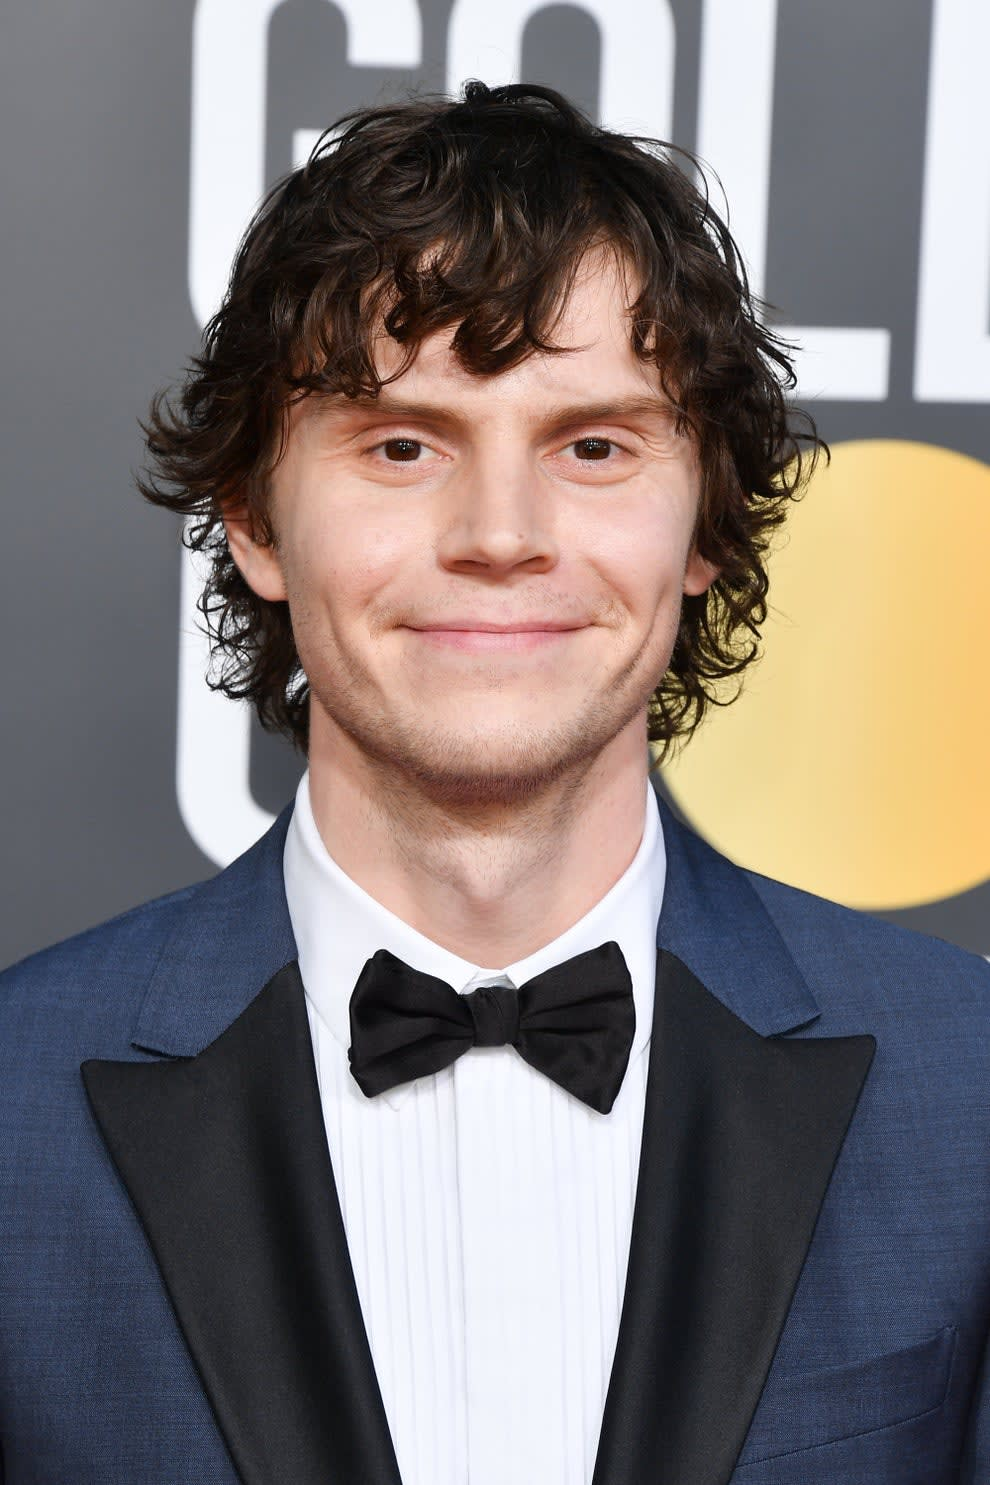 Evan Peters at the Golden Globes